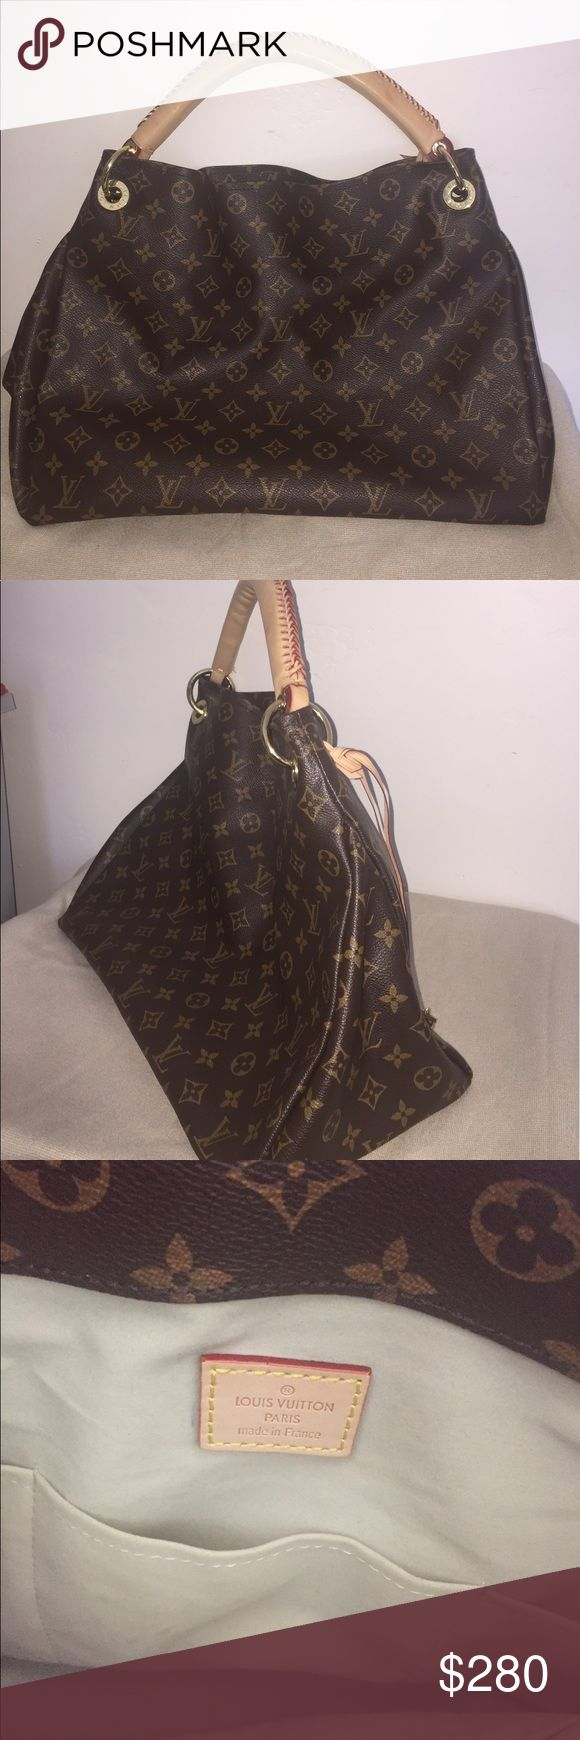 Louis Vuitton Purse 🔅Price reflects authenticity 🔅Great condition, very clean. Louis Vuitton Bags